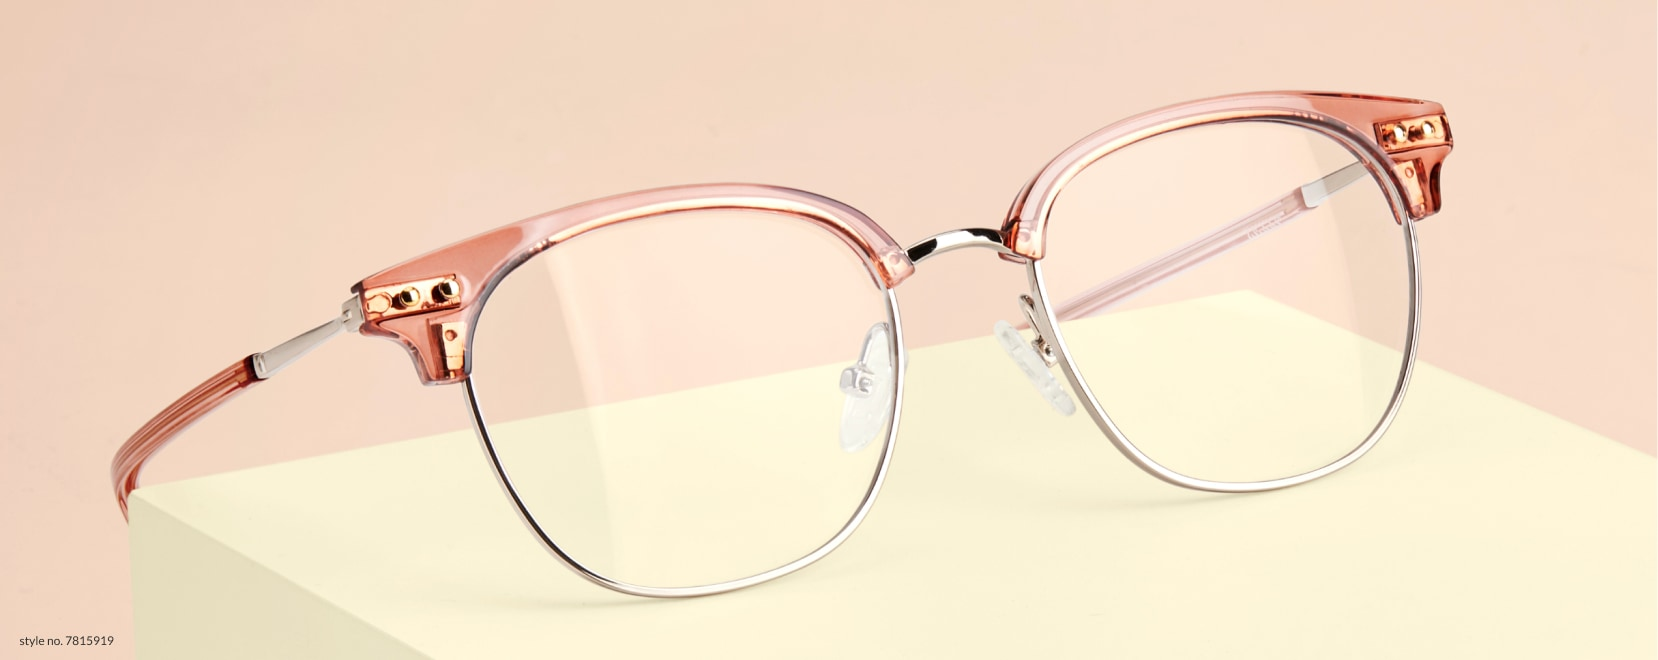 Image of zenni browline glasses #7815919, on top of a tan box against a pink background.